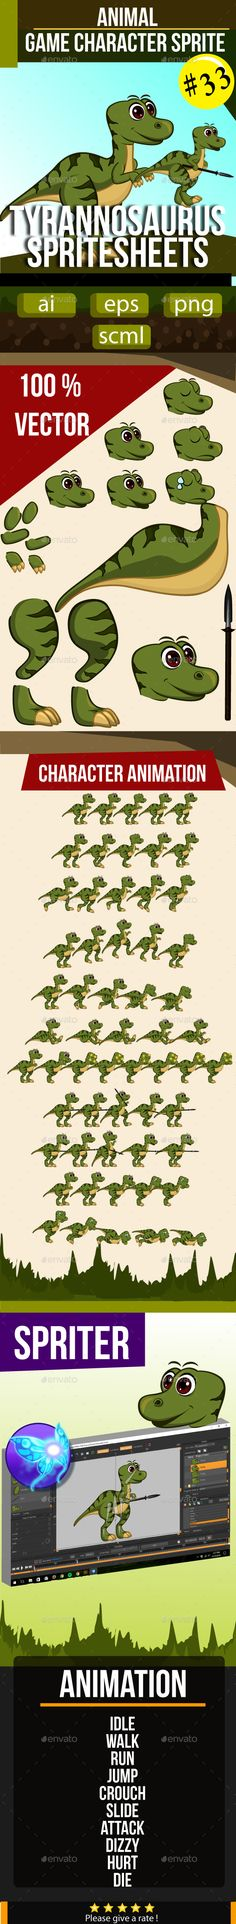 Tyrannosaurus Sprite Sheet — Vector EPS #action #vector • Available here → https://graphicriver.net/item/tyrannosaurus-sprite-sheet/17936191?ref=pxcr